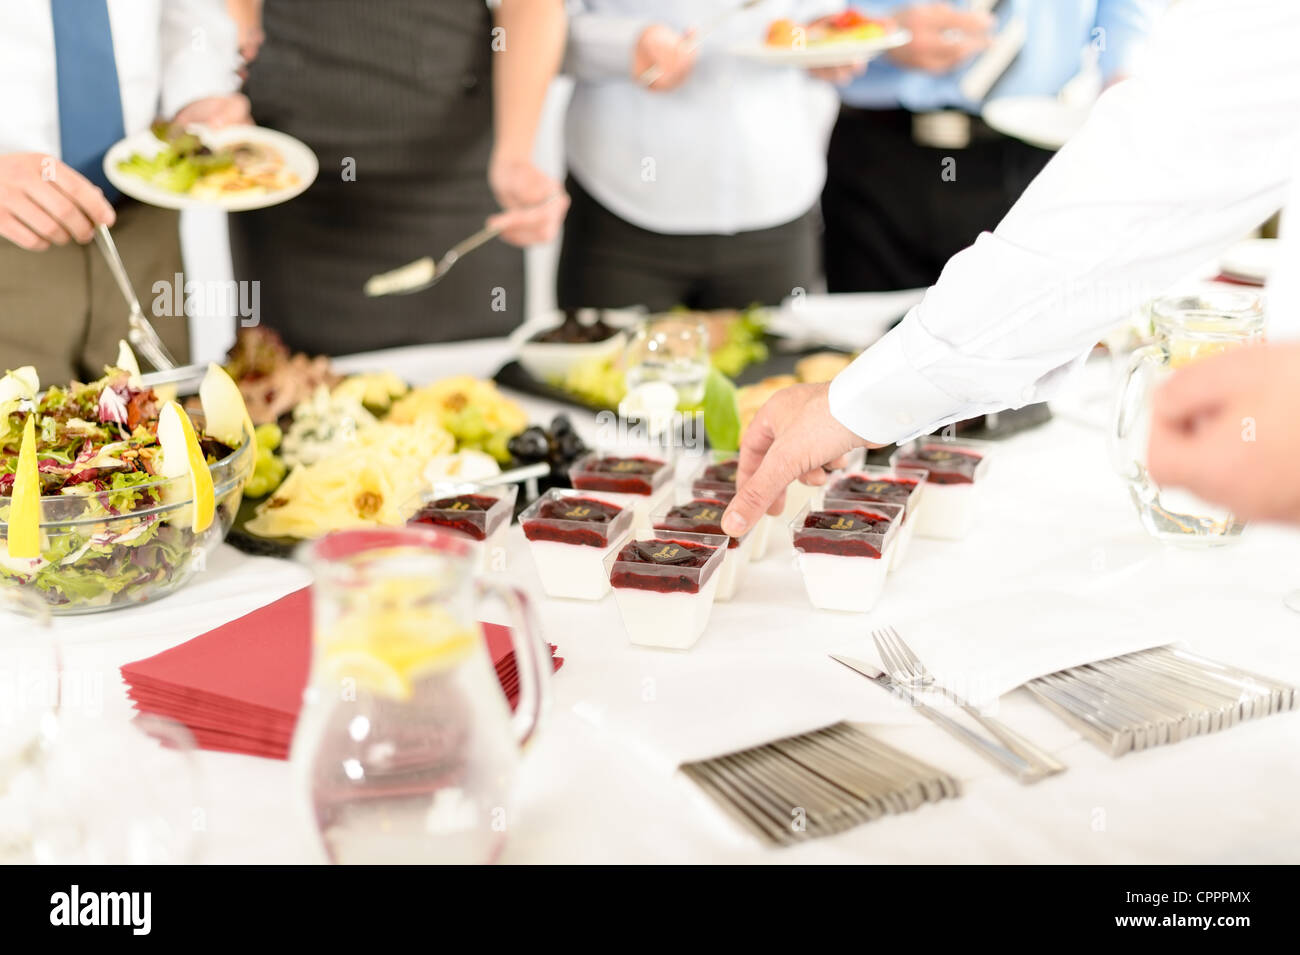 Appetizers mini desserts on catering buffet white tablecloth business event - Stock Image